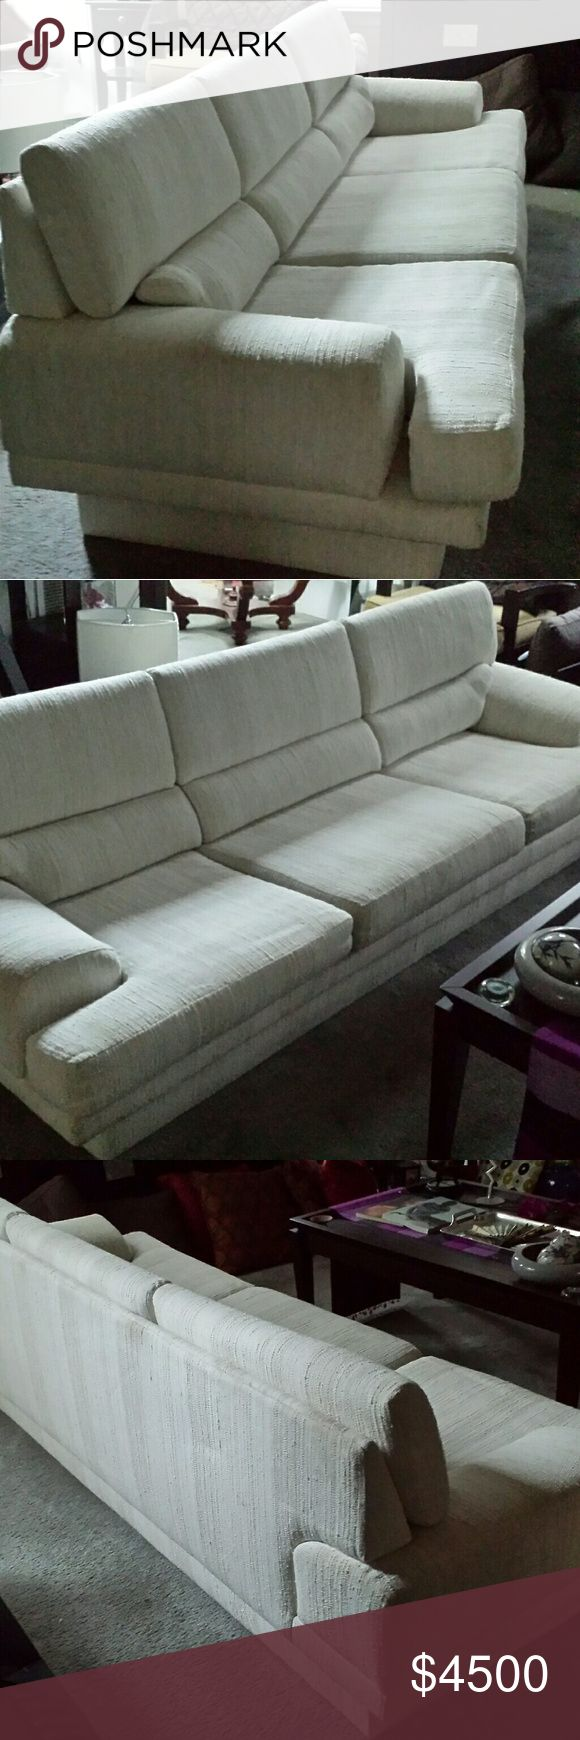 """Authentic 1960s MILO BAUGHMAN Danish Modern Sofa This awesome Milo Baughman Danish Modern Sofa is a retro classic original, designed in the 1960s by the now deceased world famous furniture designer for Thayer Coggin of North Point, North Carolina. It measures 90"""" L x 33"""" W x 30"""" H. Prefer to sell but open to rentals to set designers, homestagers and photographers. This Mid-Century marvelous piece is perfect for a loft space or any open living room area in need of a dramatic focal point. In…"""